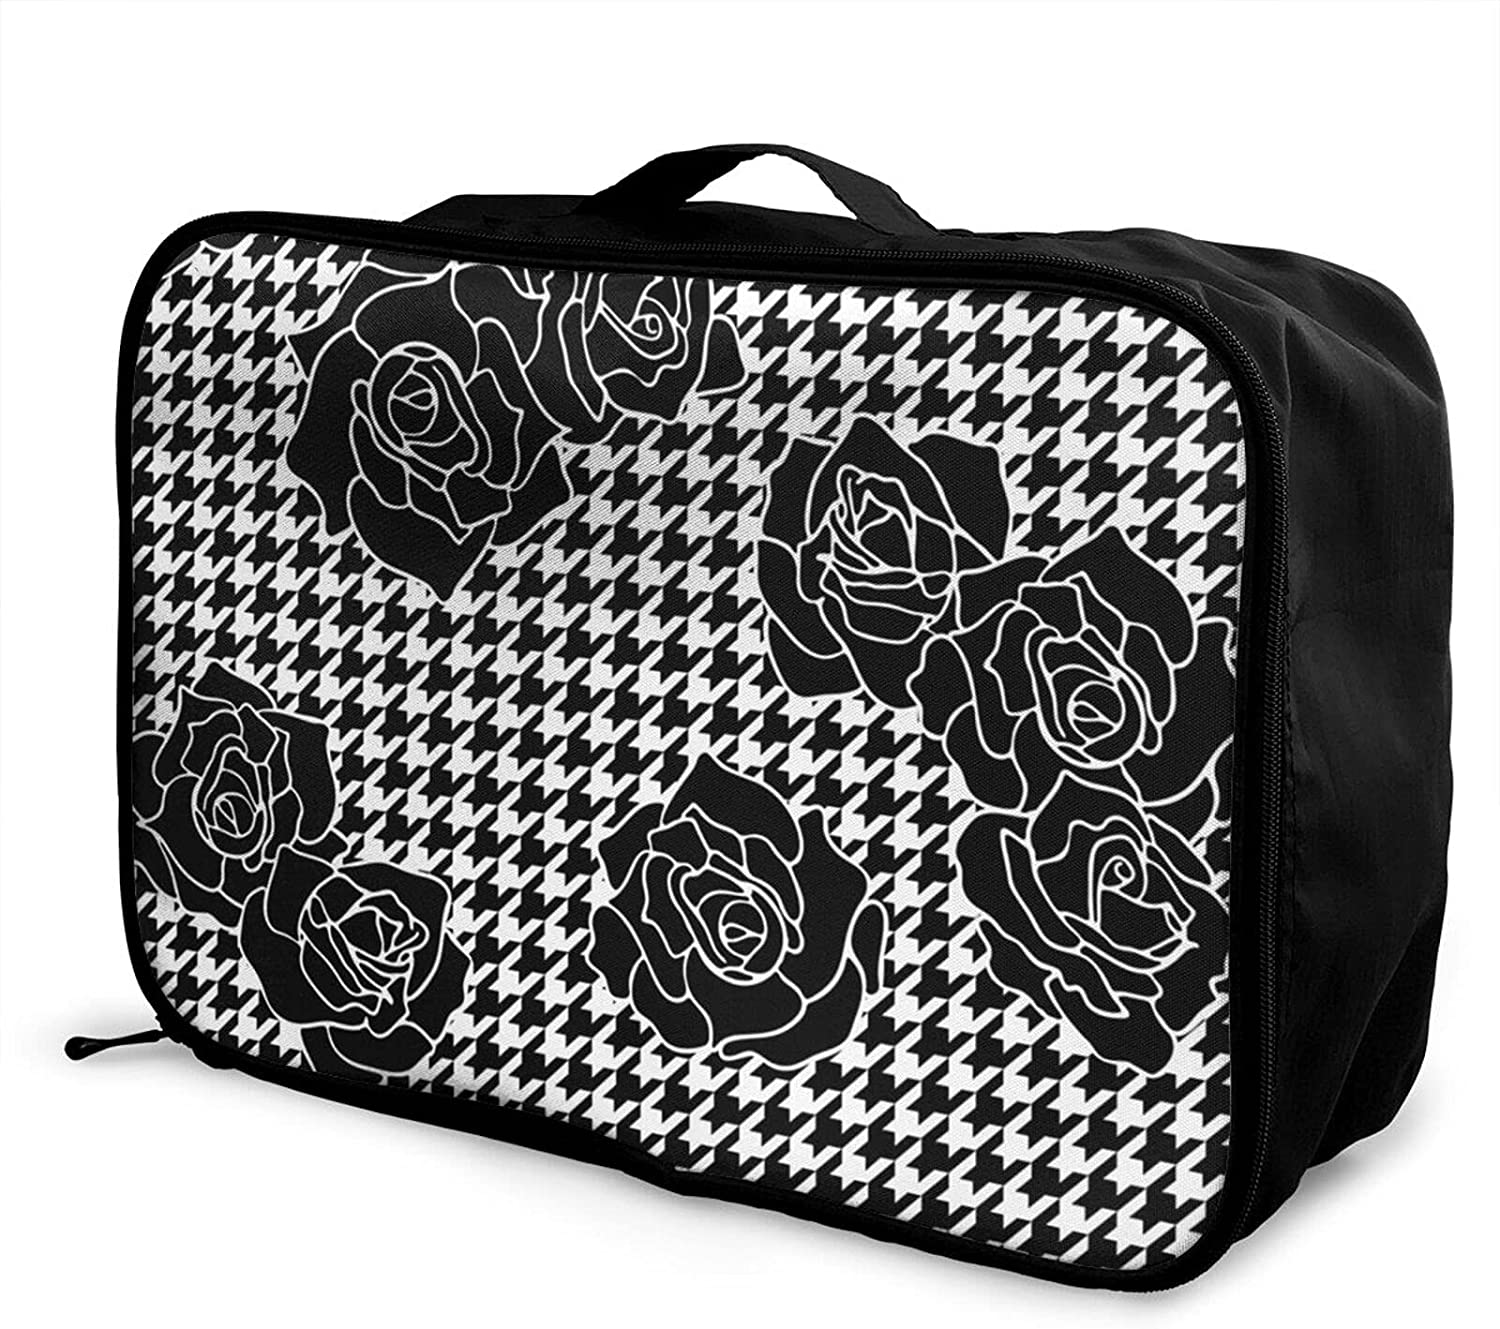 Ranking TOP8 Foldable Regular discount Travel Bag Tote Roses Plaid Black Carry-On Houndstooth